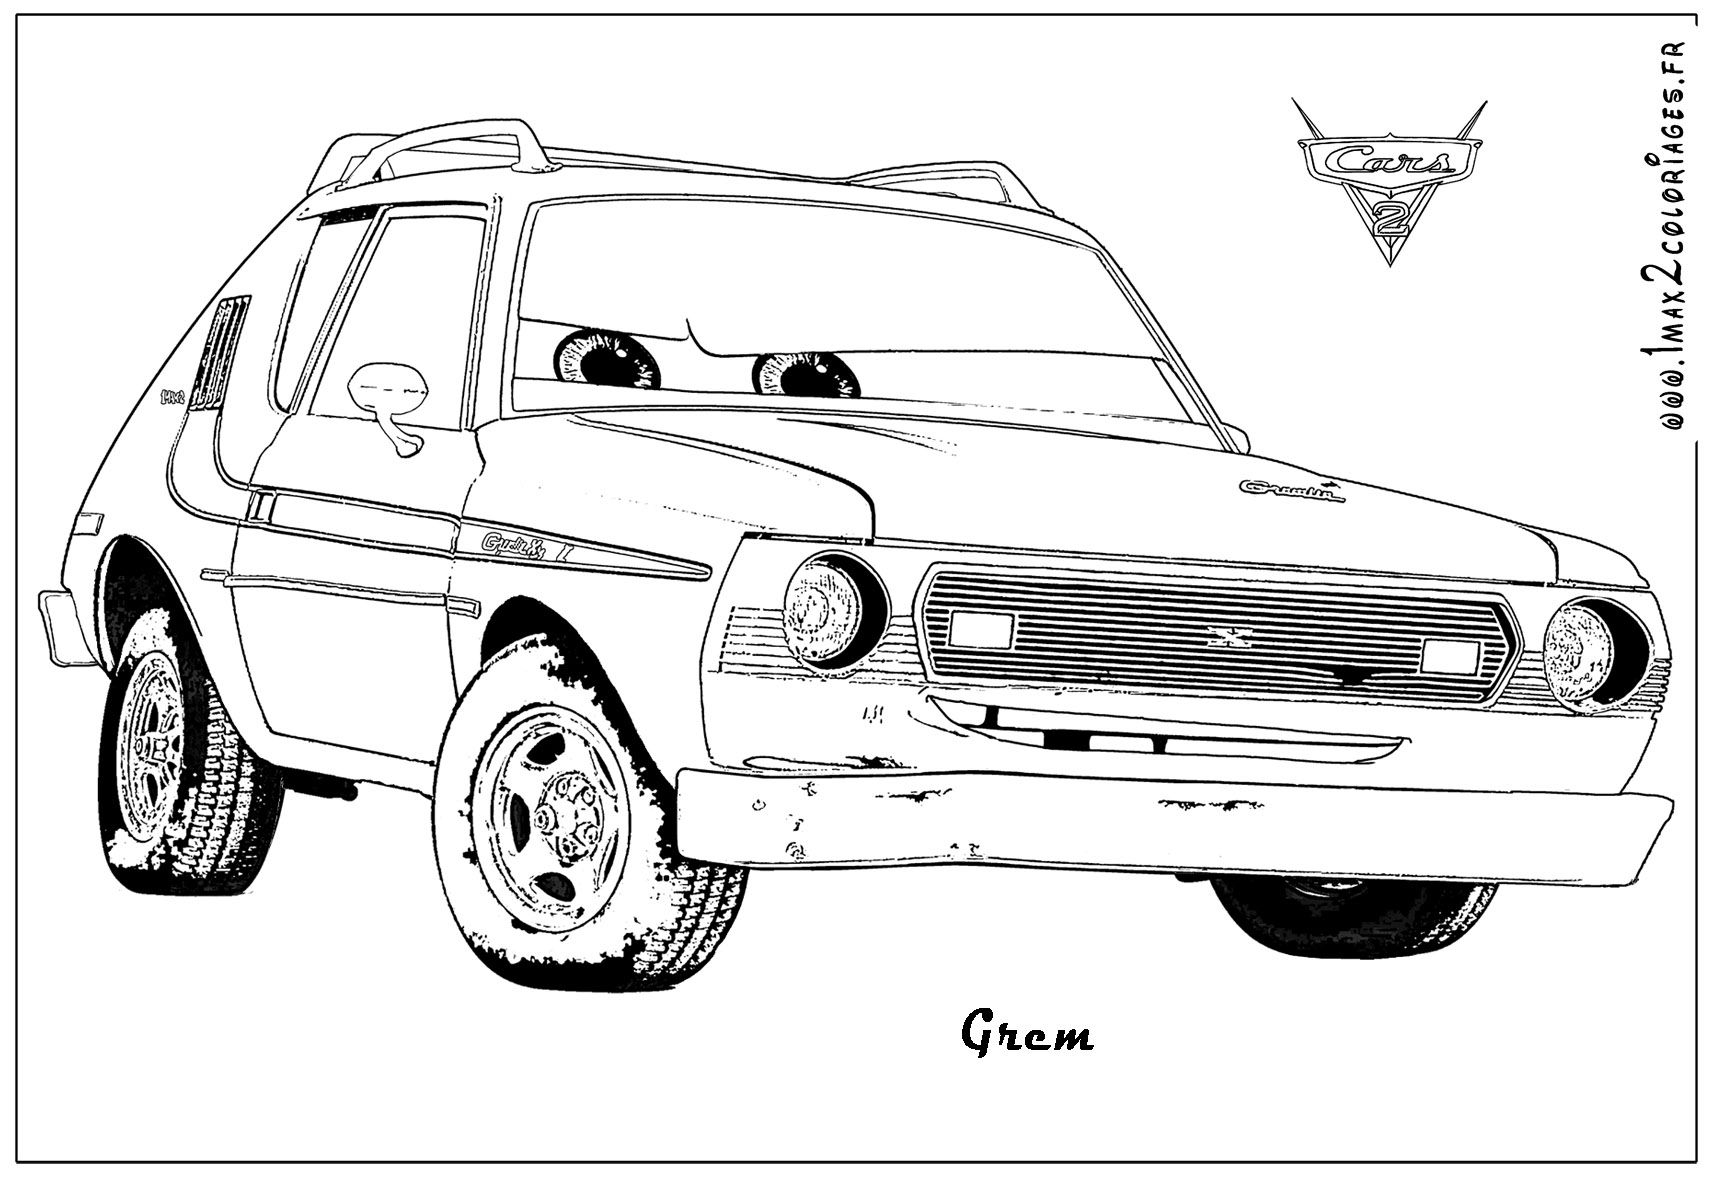 Cars 2 Printable Coloring Pages Grem Cars 2 Colouring Download Of Disney Car Coloring Pages Cars Free Download